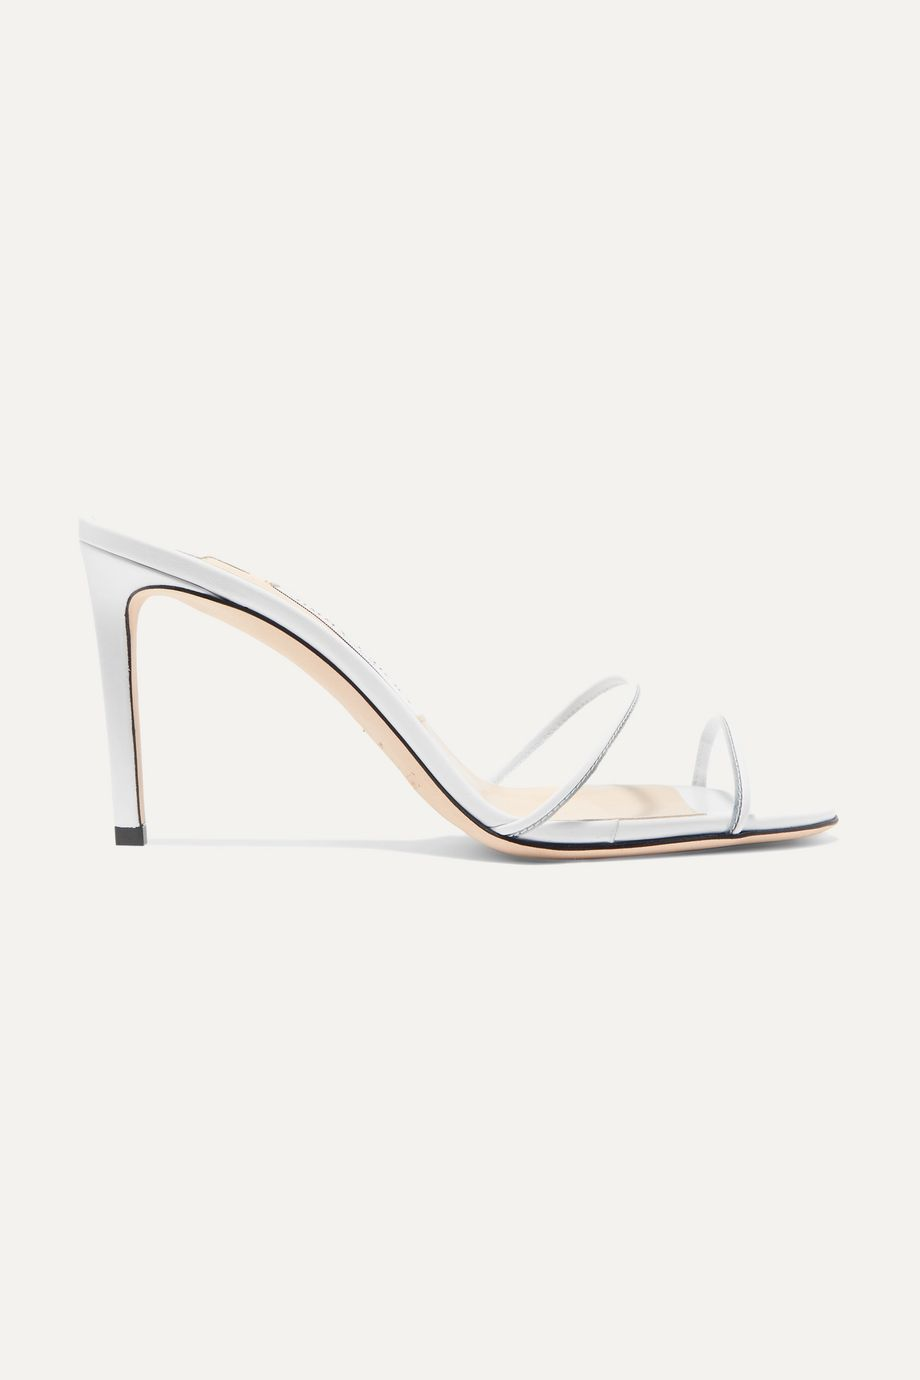 Jimmy Choo Stacey 85mm leather and PVC mules